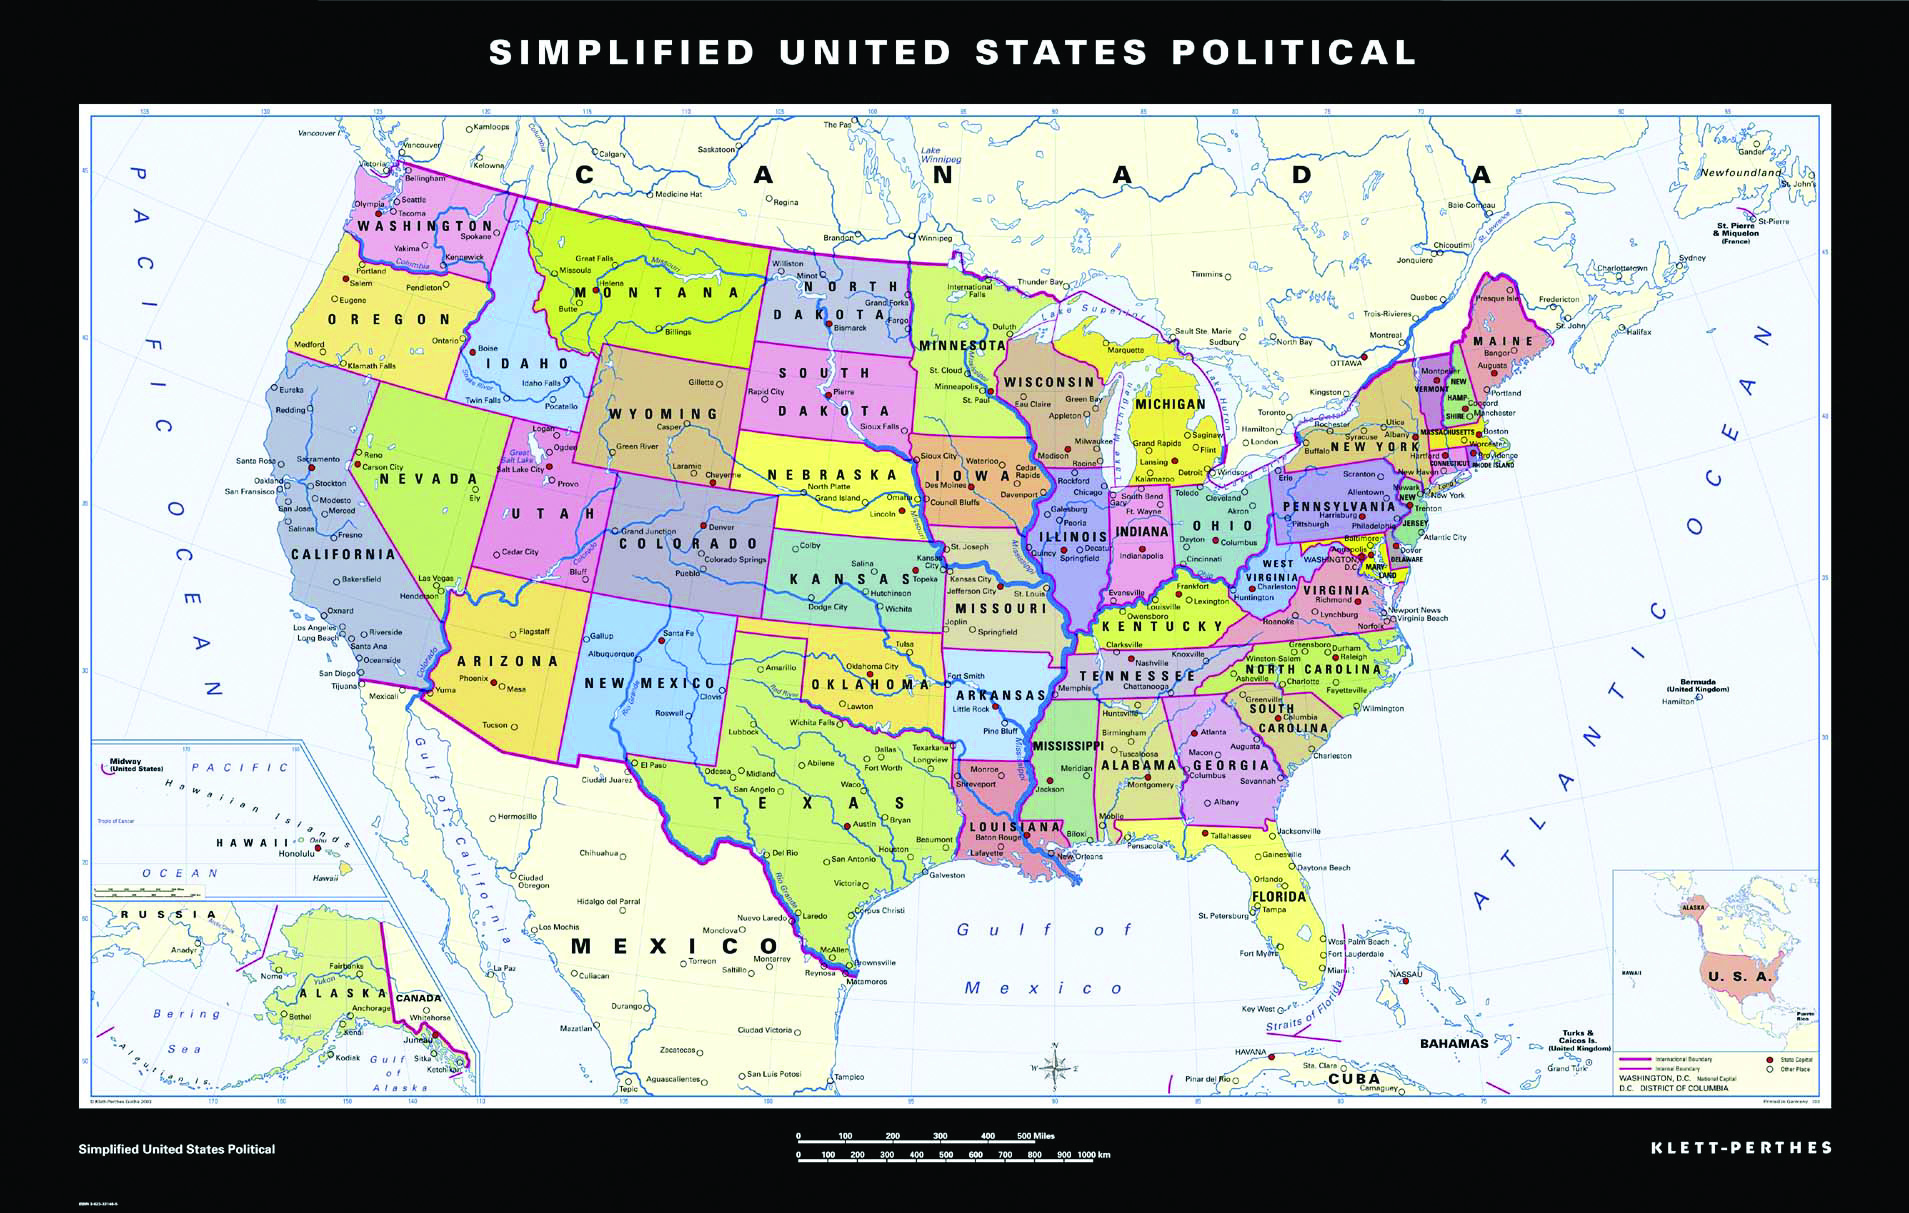 Simplified United States Political Map